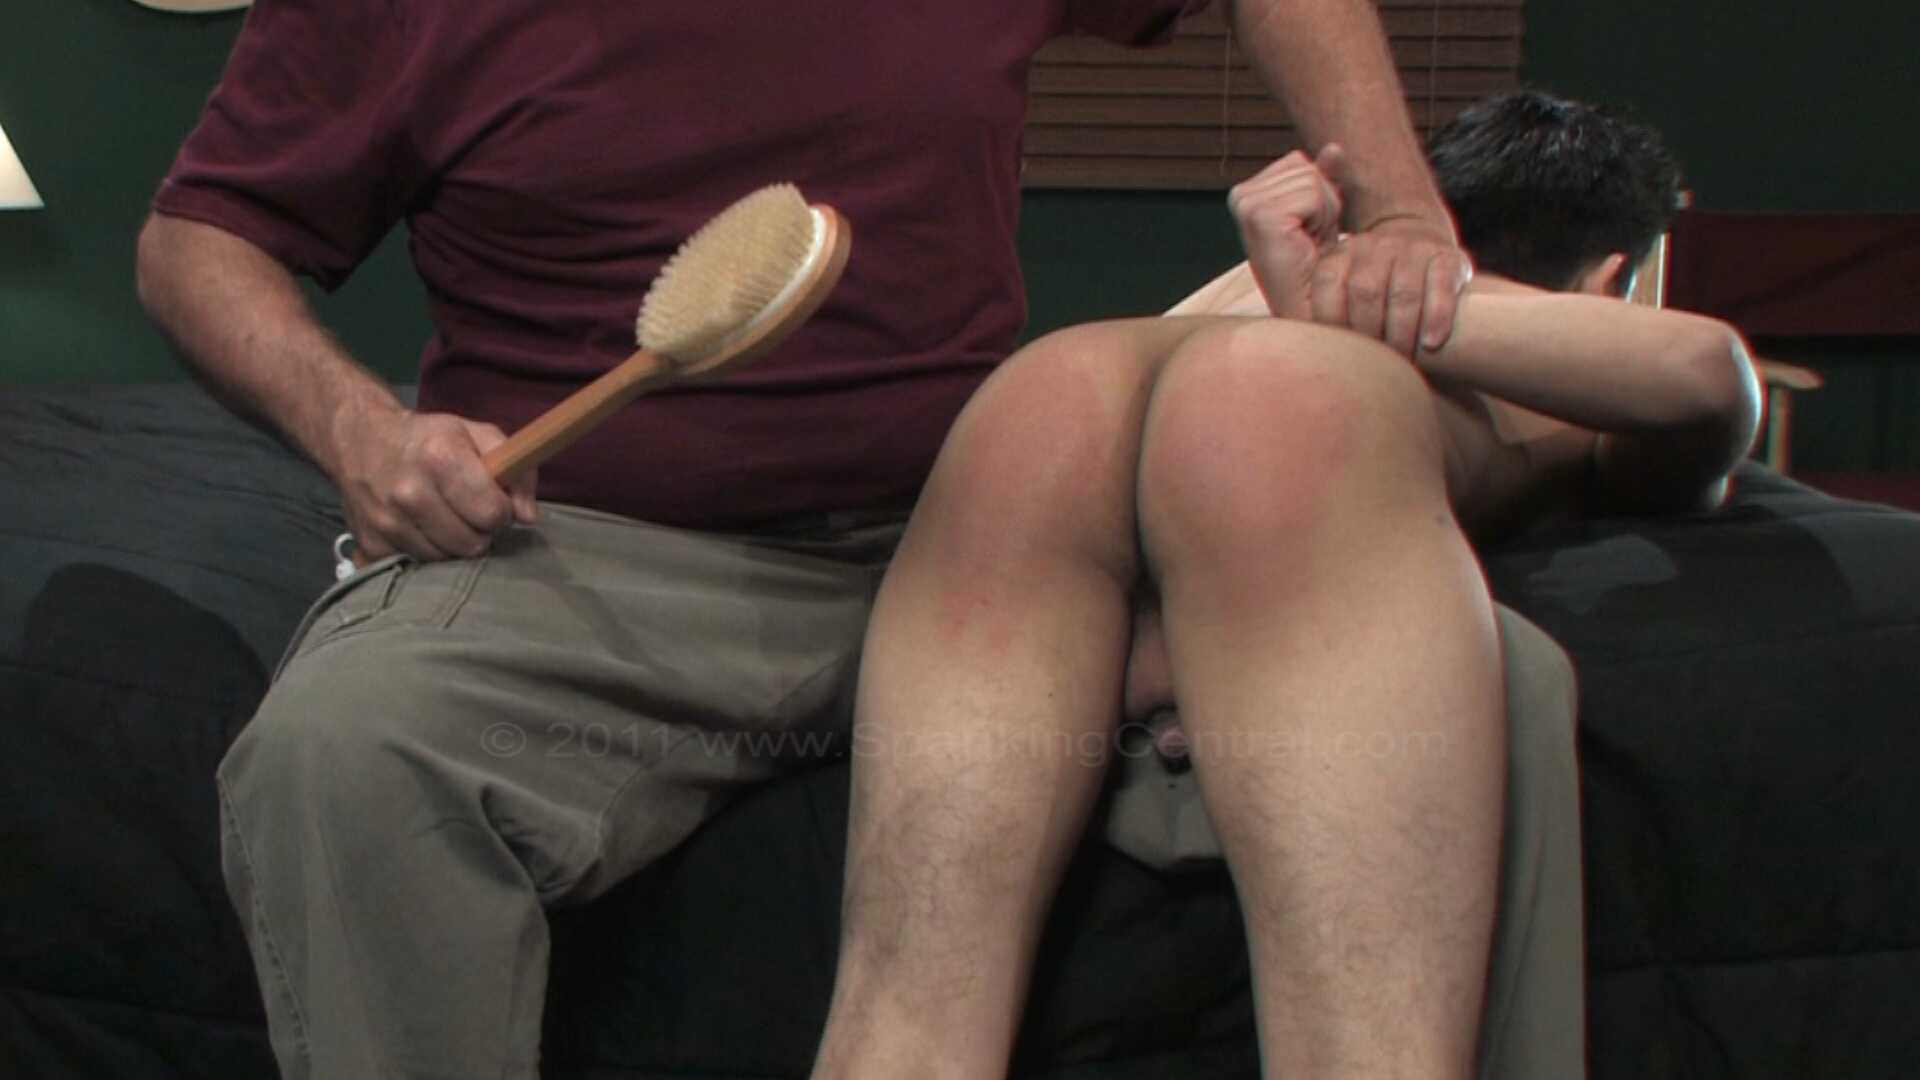 Spank central videos dub cumshot